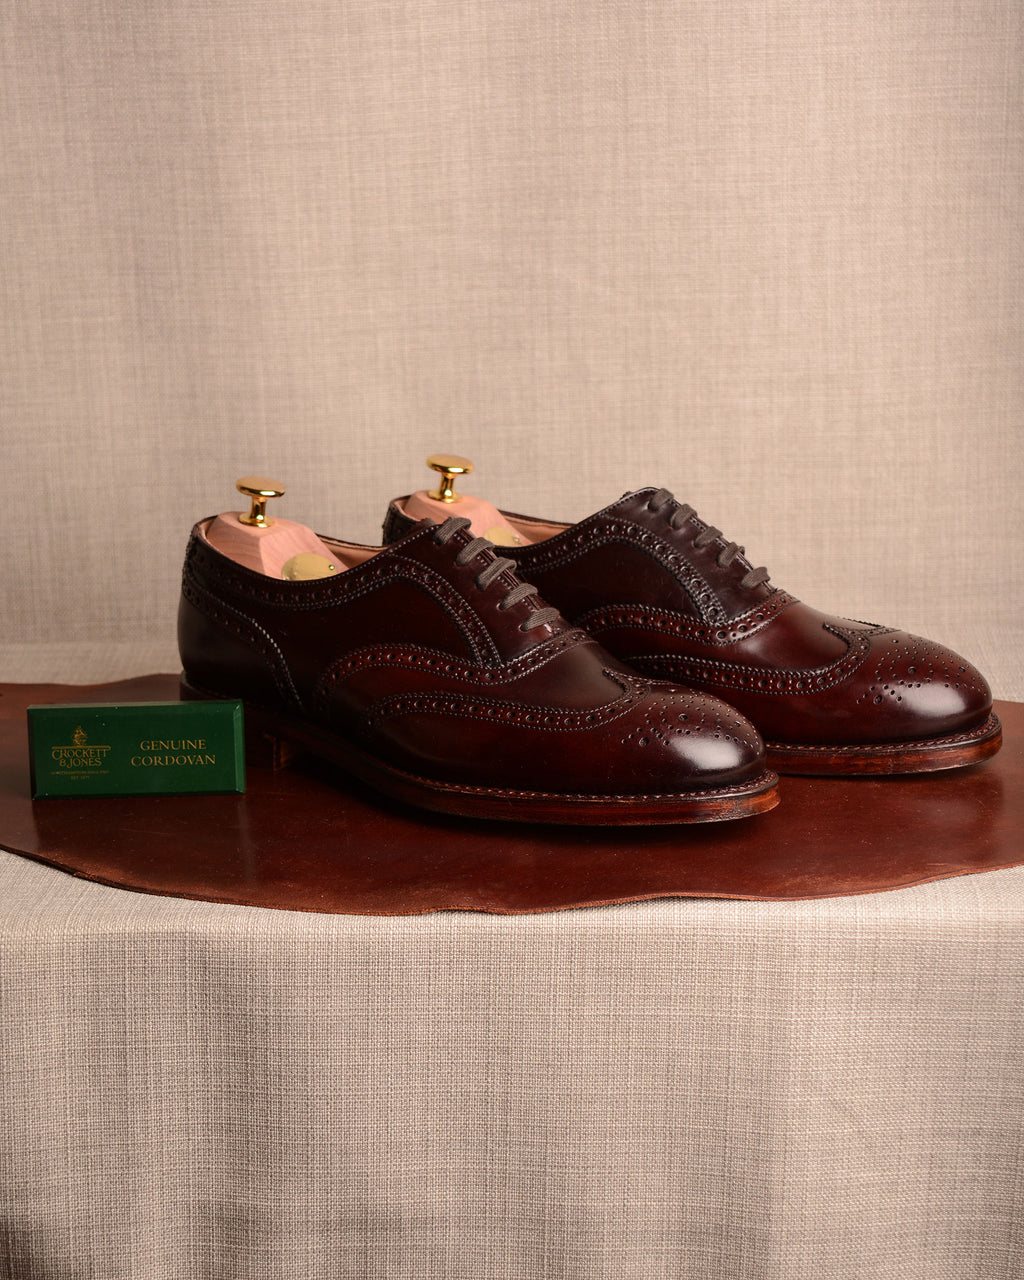 Crockett & Jones Suffolk 2 - Col.8 Cordovan